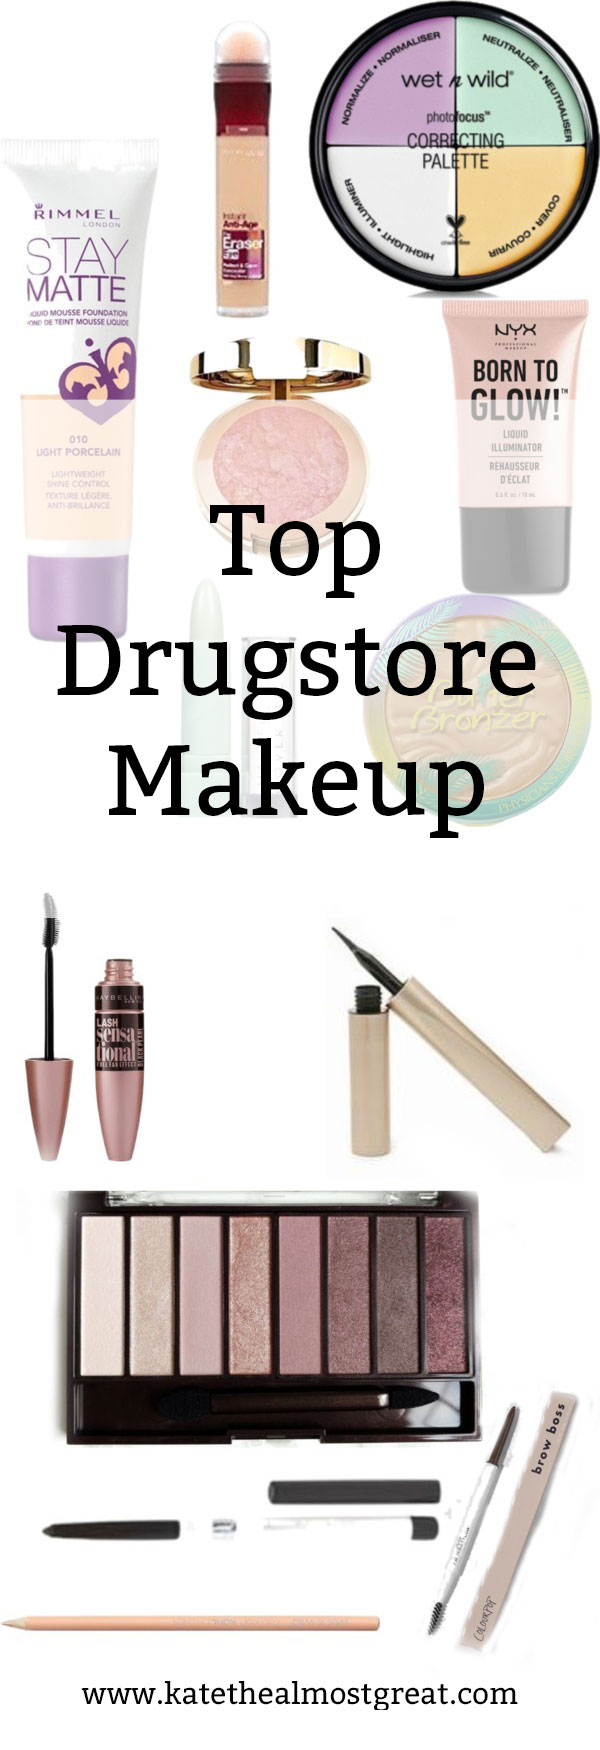 I'm sharing the top drugstore makeup out there! Get your full face done without spending hundreds of dollars on it.